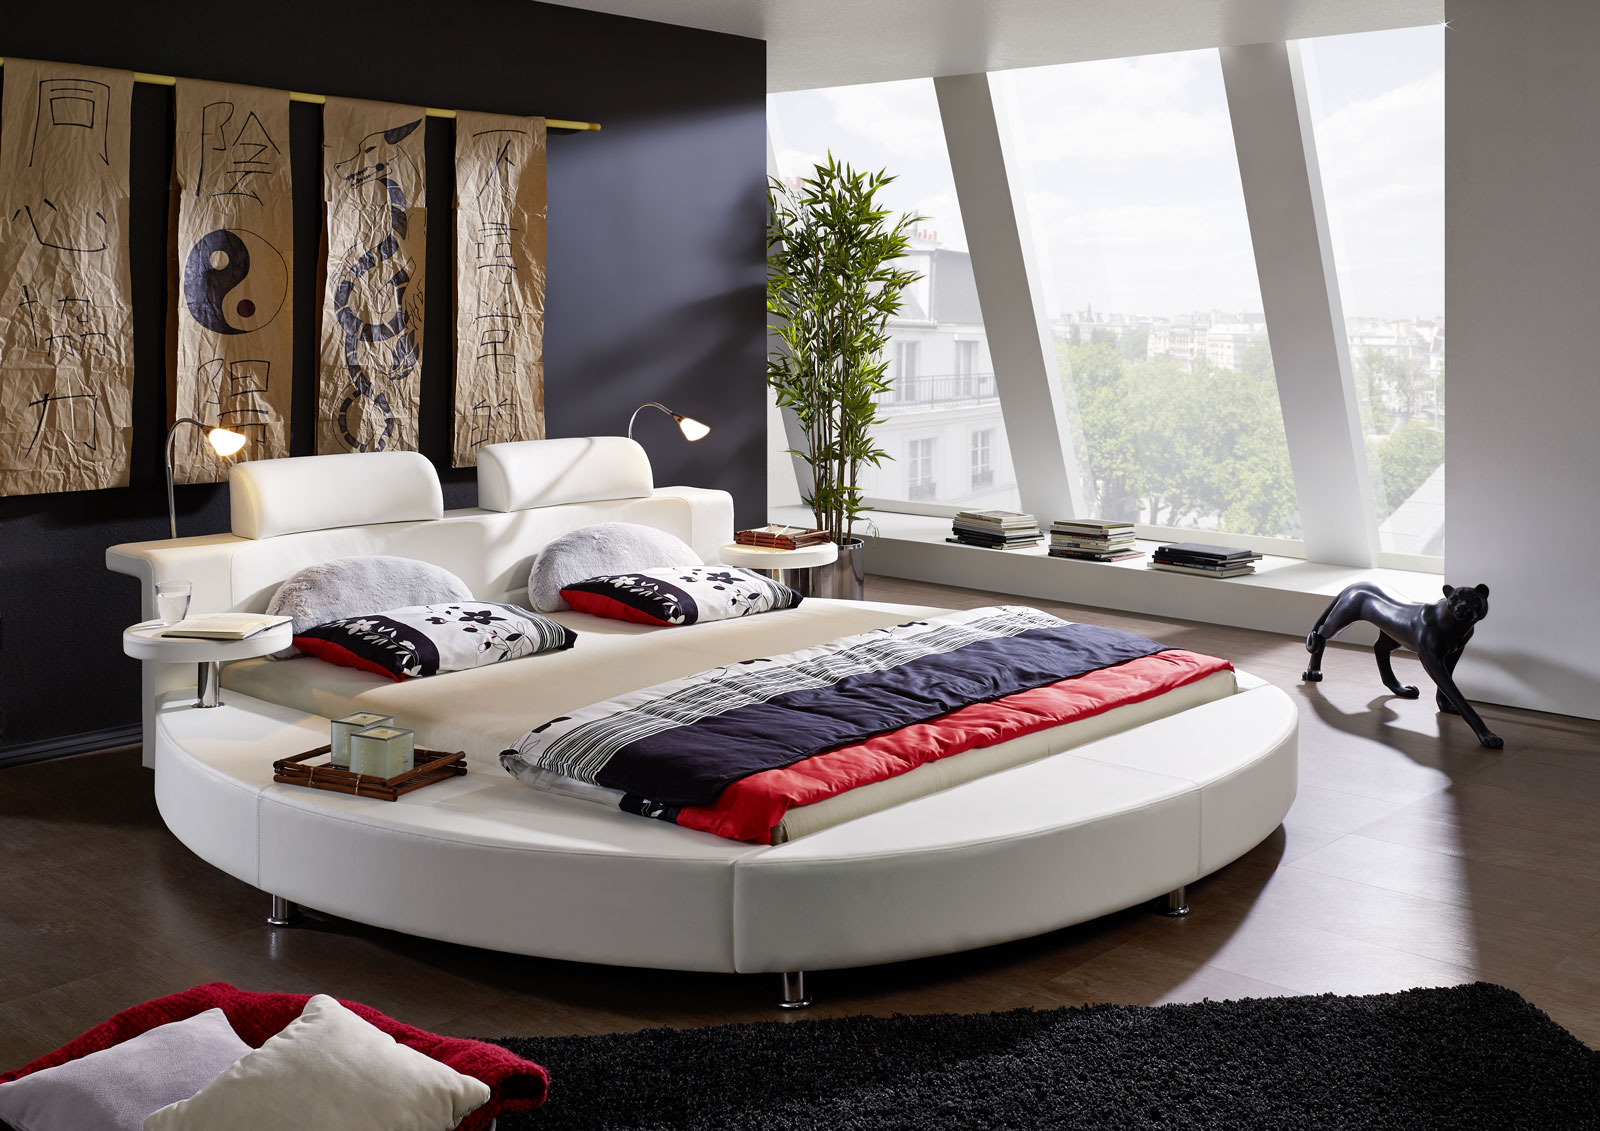 sam rundbett doppelbett 180 x 200 cm 2 leselampen wei. Black Bedroom Furniture Sets. Home Design Ideas